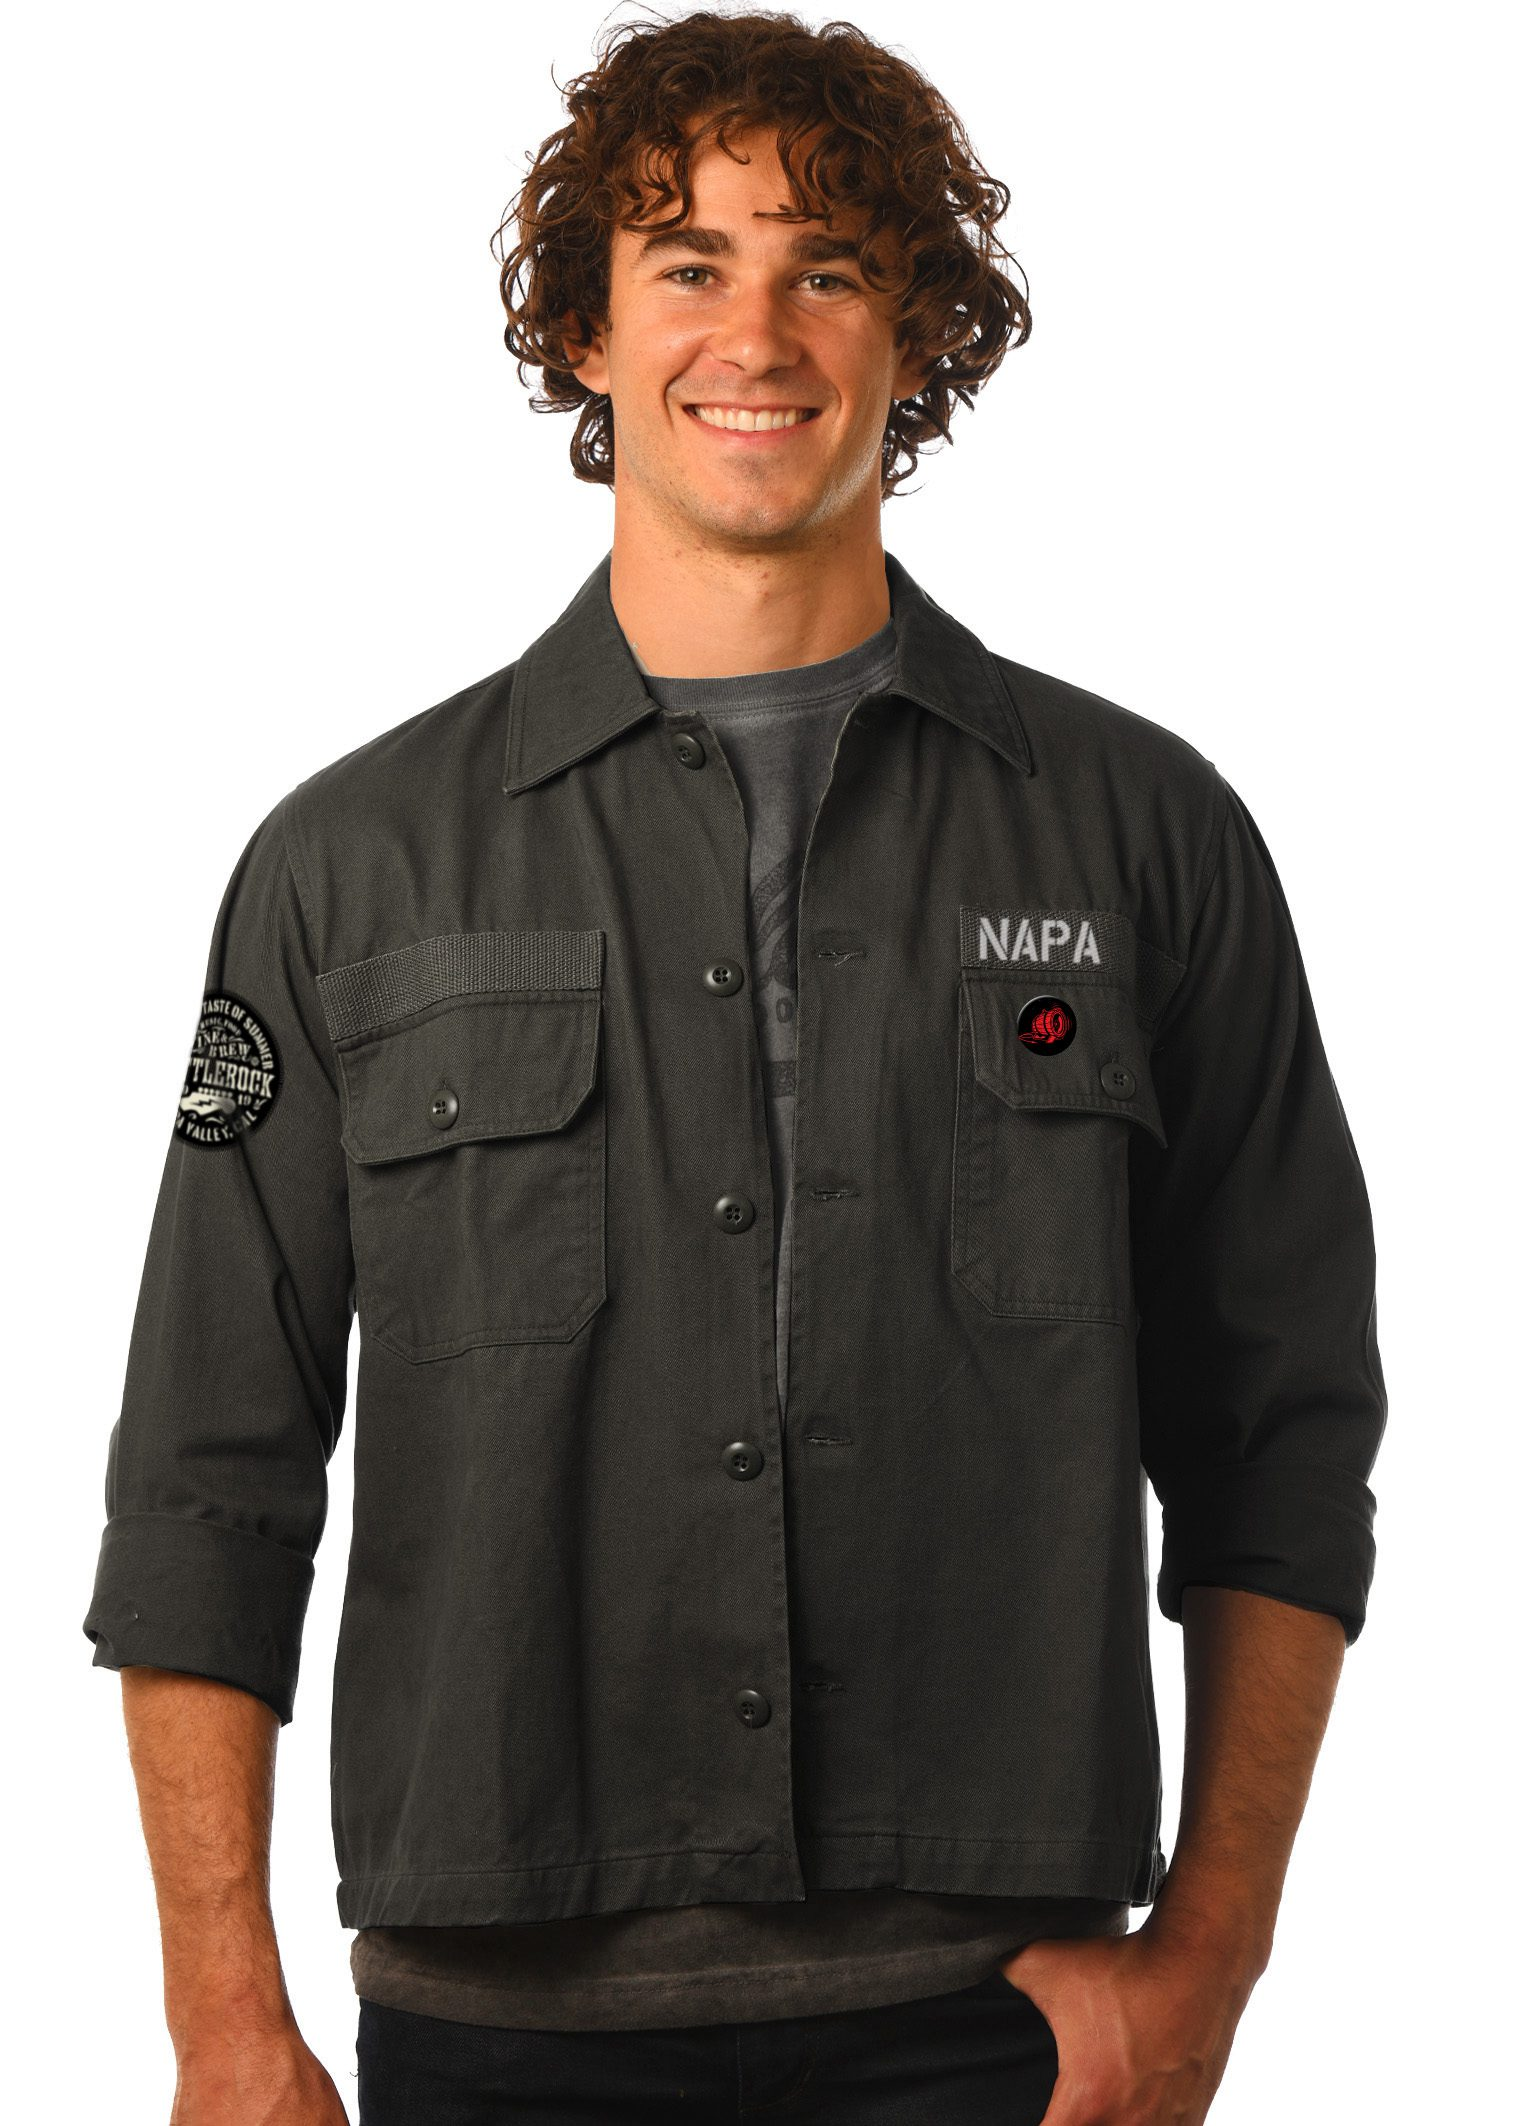 GG 910 Military Jacket-Front-2BR copy